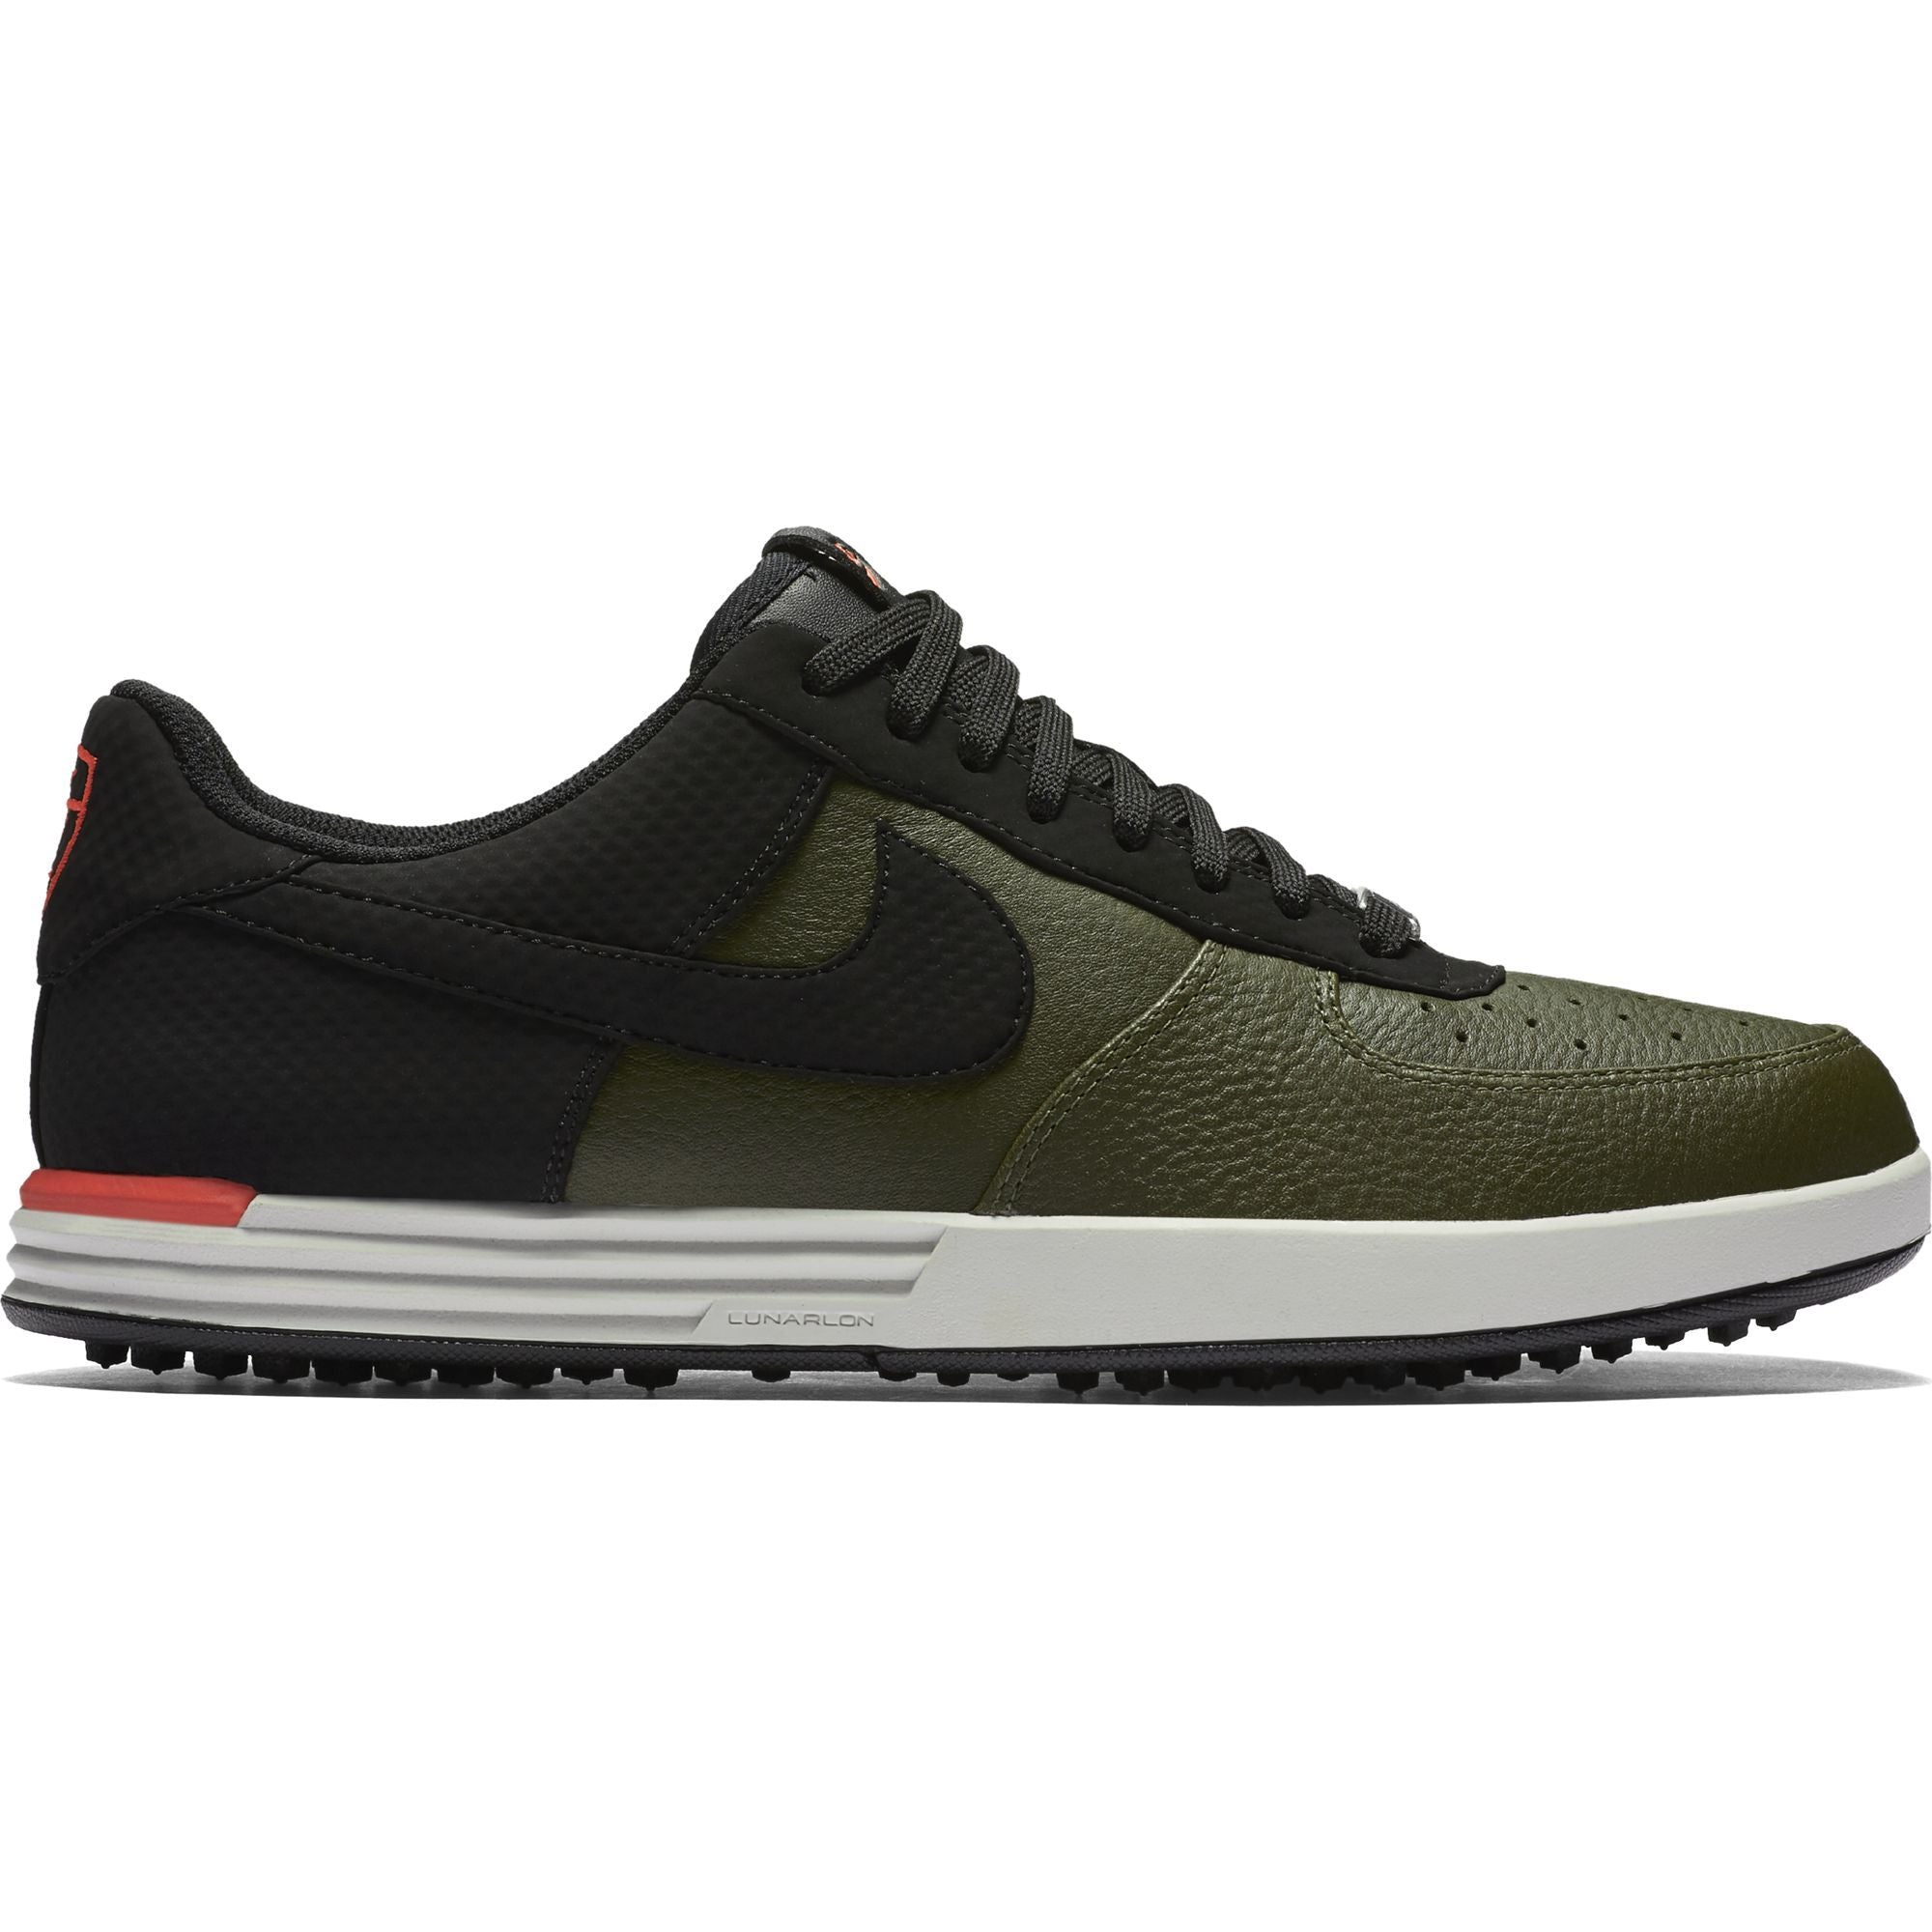 timeless design 38adb 49cd5 ... Men s - NIKE LUNAR FORCE 1 G - Cargo Khaki Black-Max Orange- ...